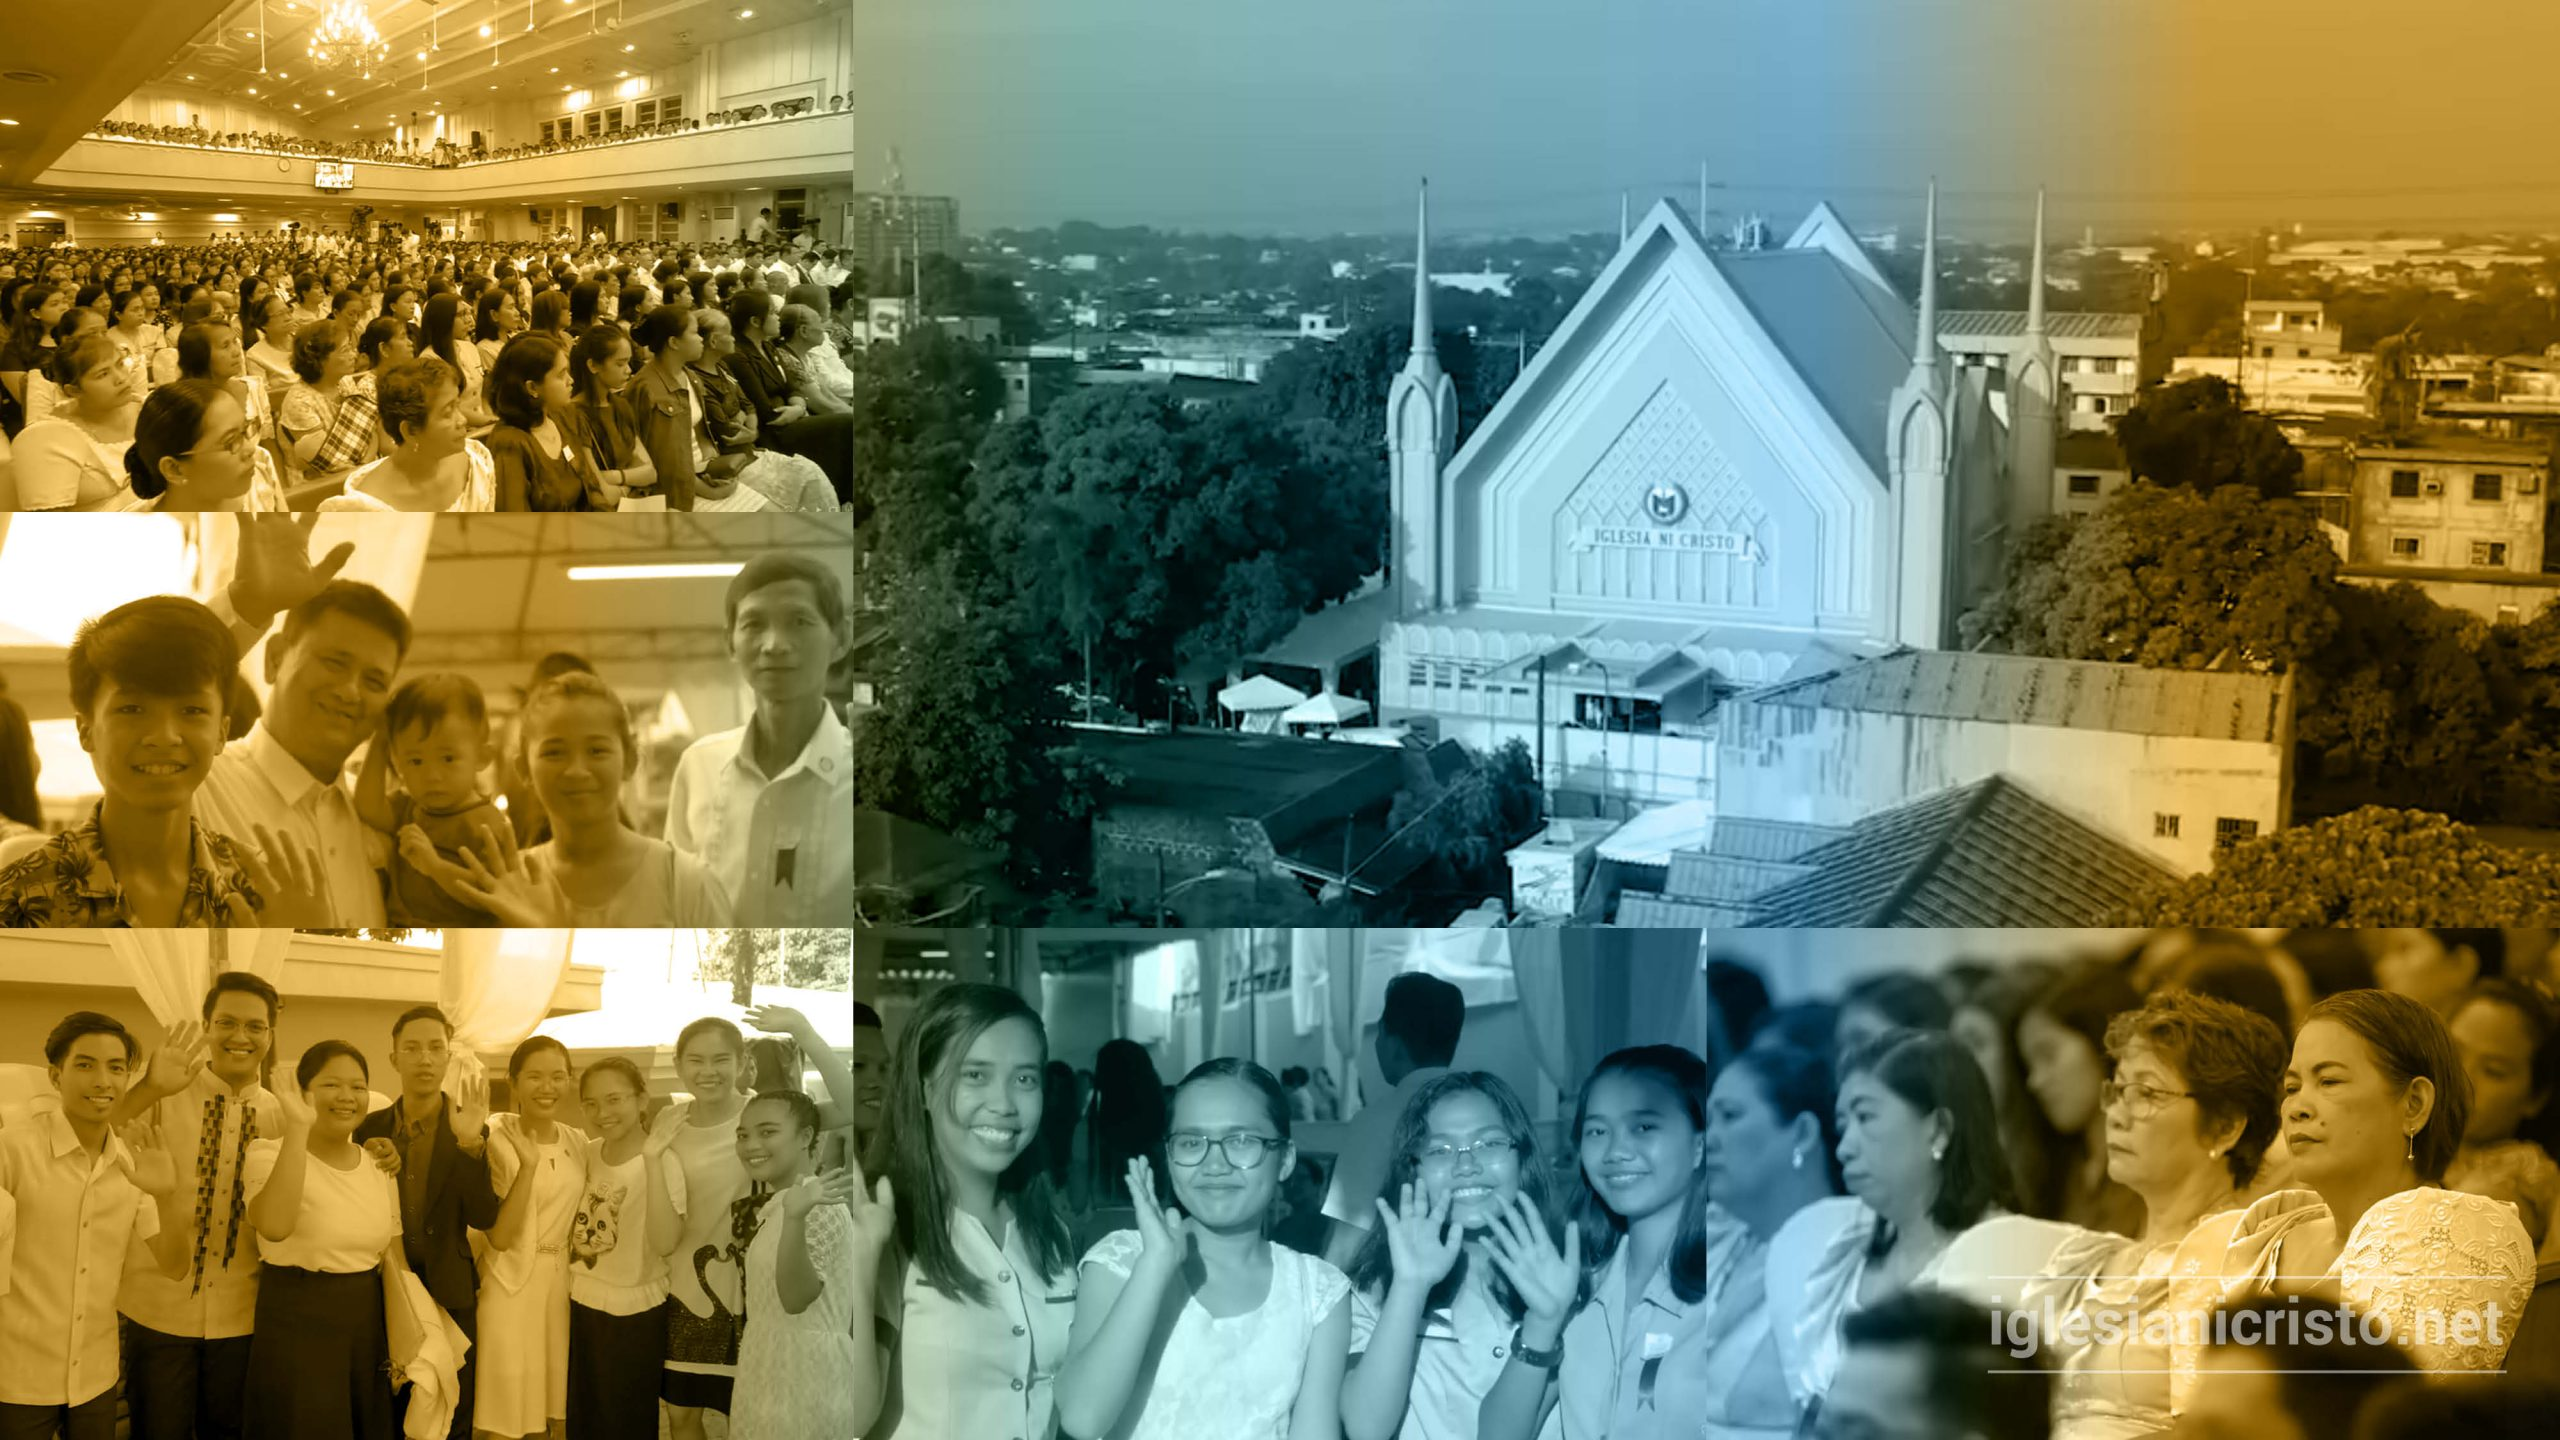 Executive Minister leads worship service to God in Novaliches, Quezon City, Philippines